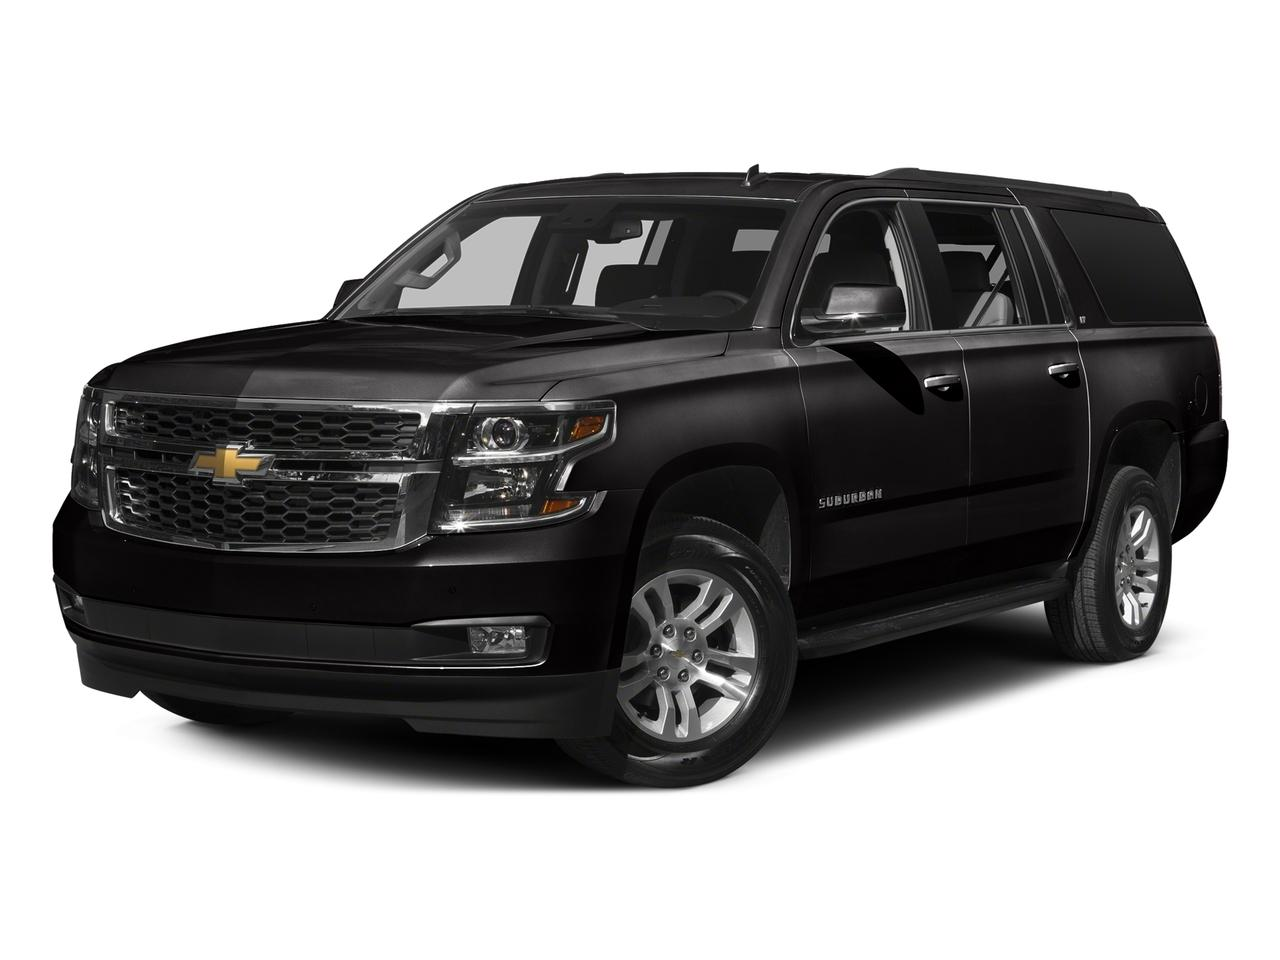 2016 Chevrolet Suburban Vehicle Photo in Westlake, OH 44145